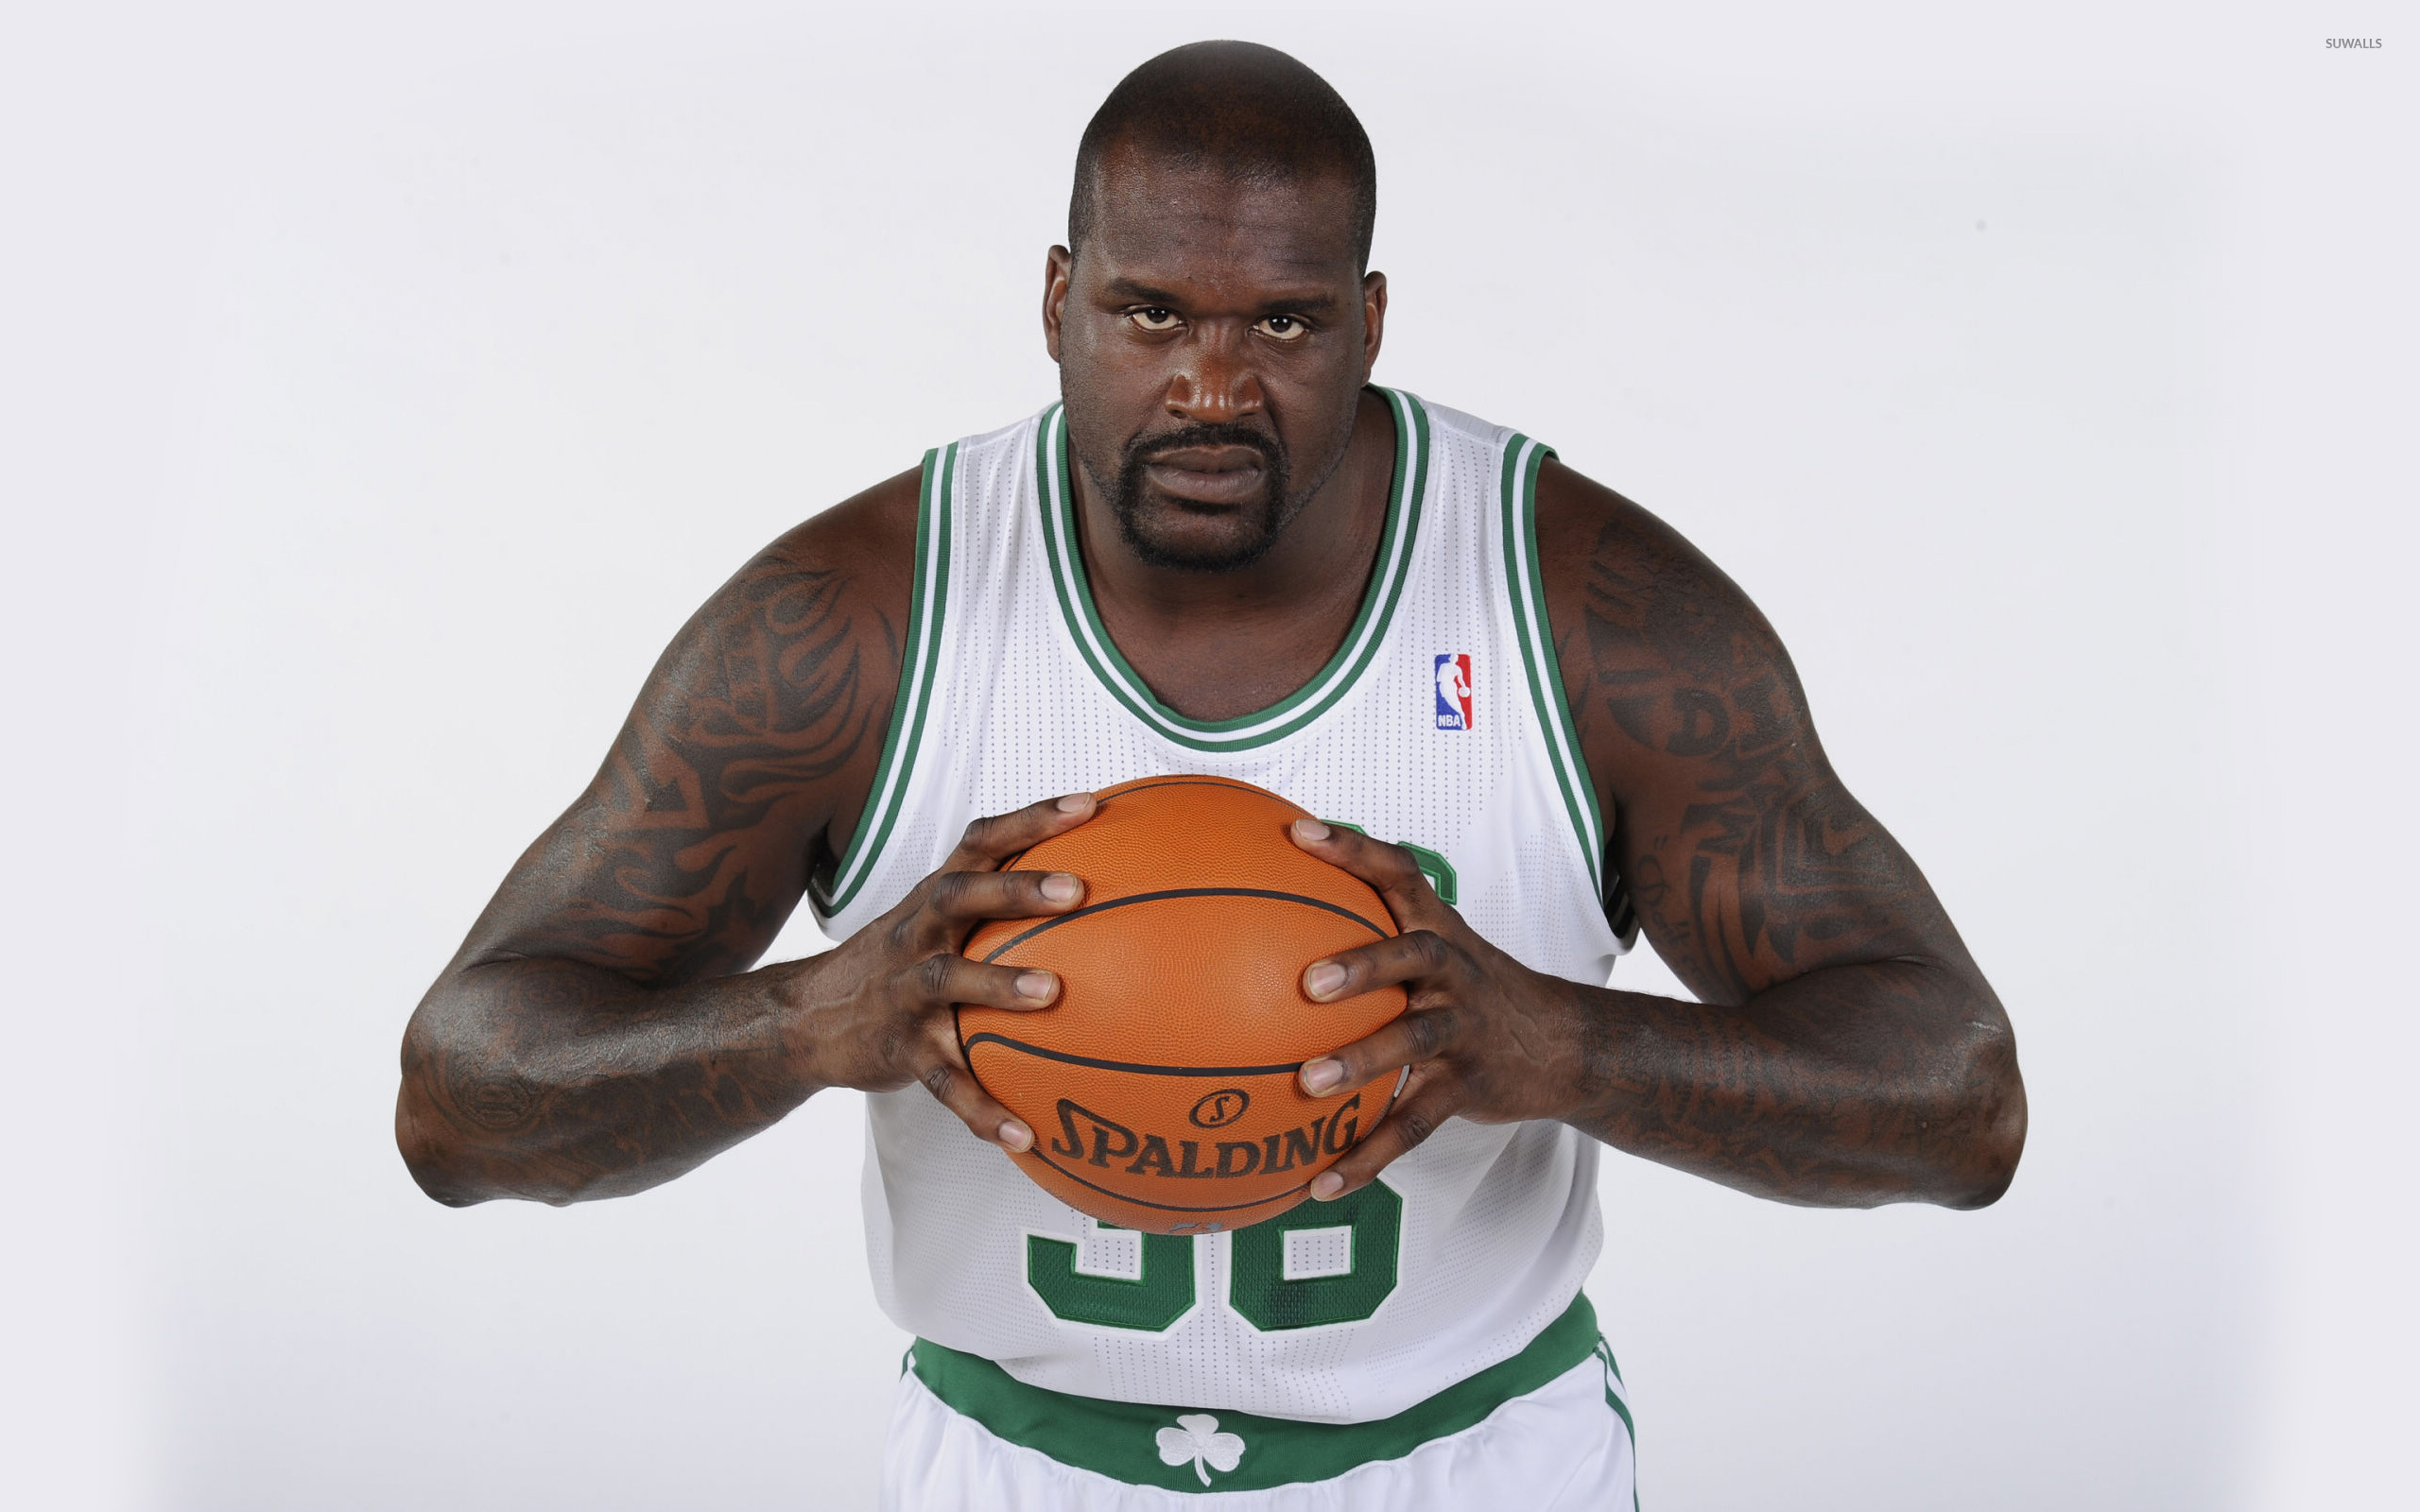 shaquille o neal Nba legend shaquille o'neal gave his top piece of advice for how young people should manage their money.